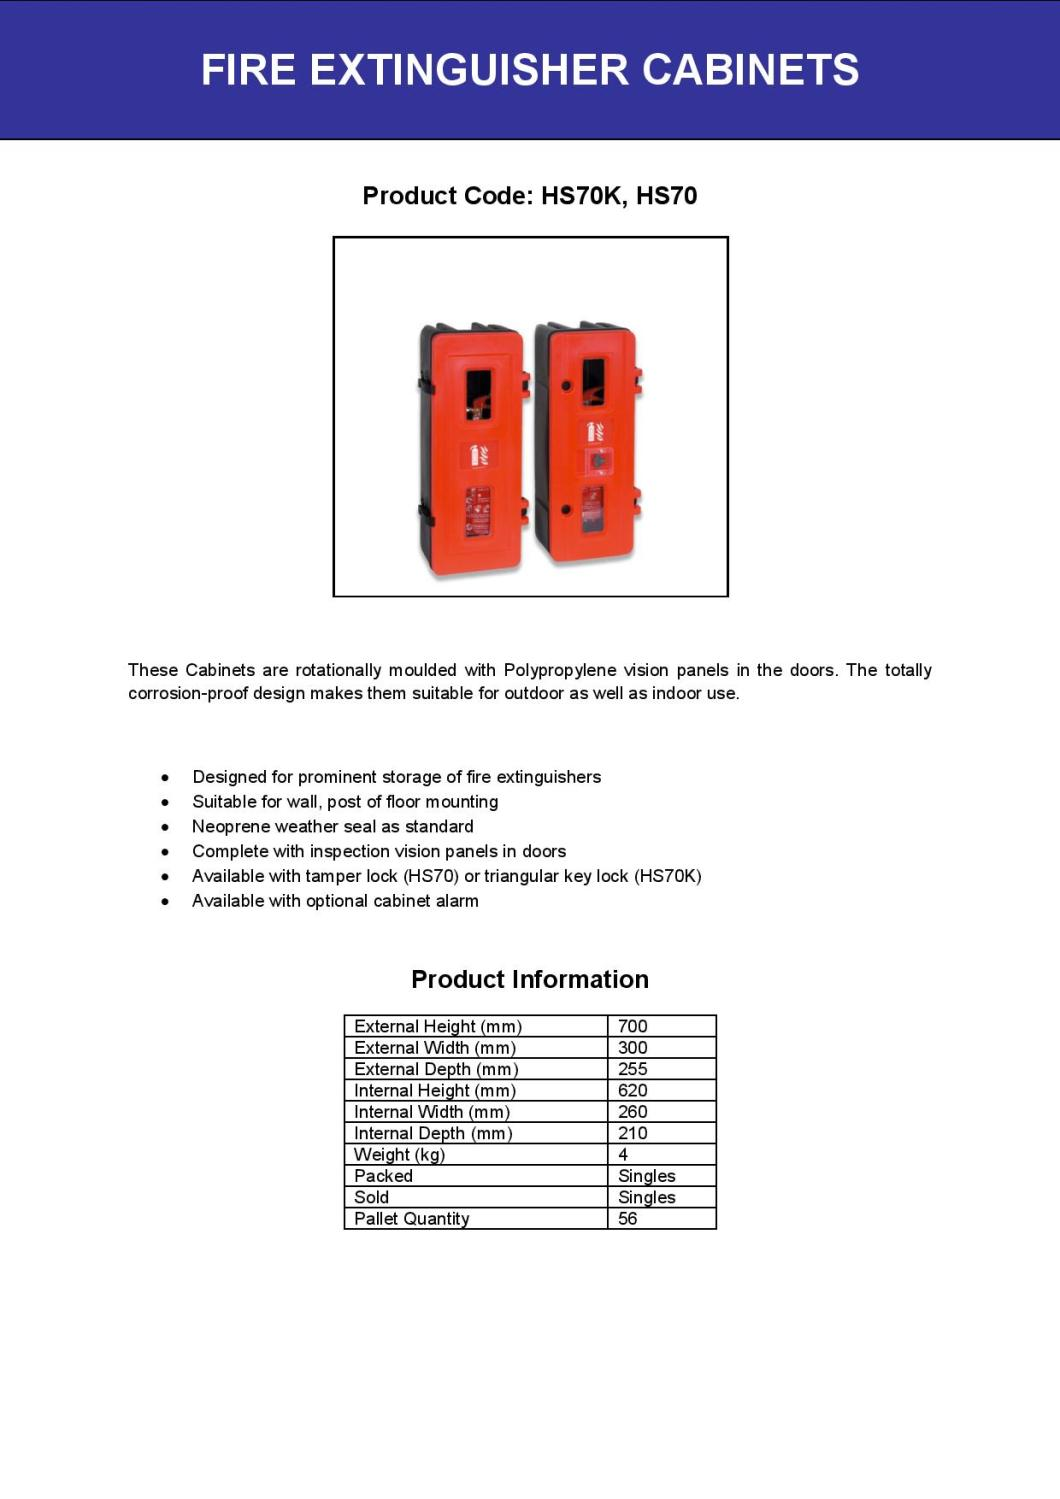 Ada Height Requirements For Fire Extinguisher Cabinets